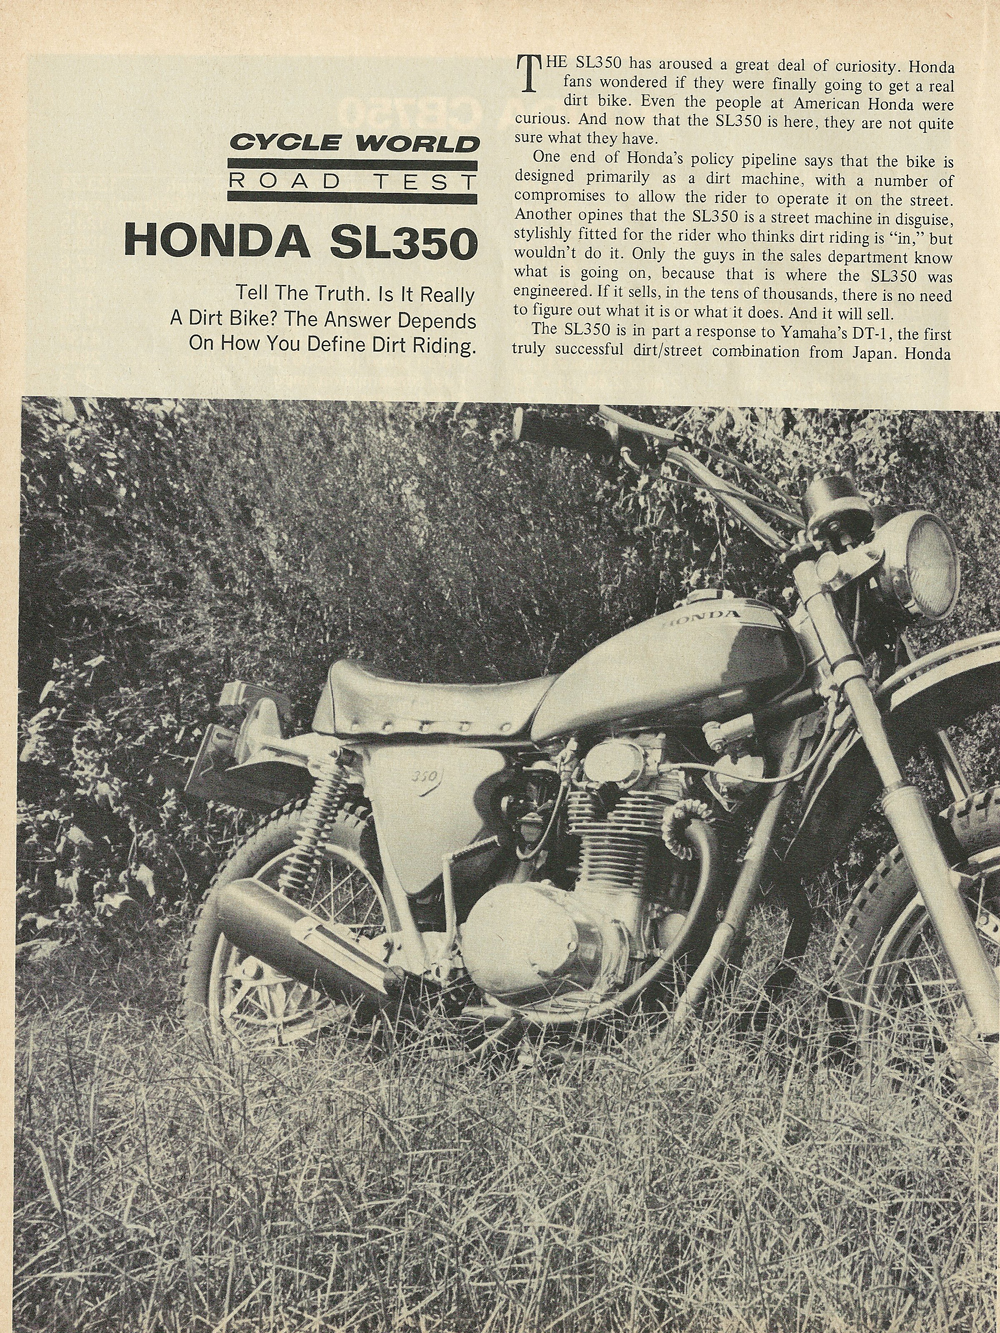 1969 Honda SL350 road test 1.jpg